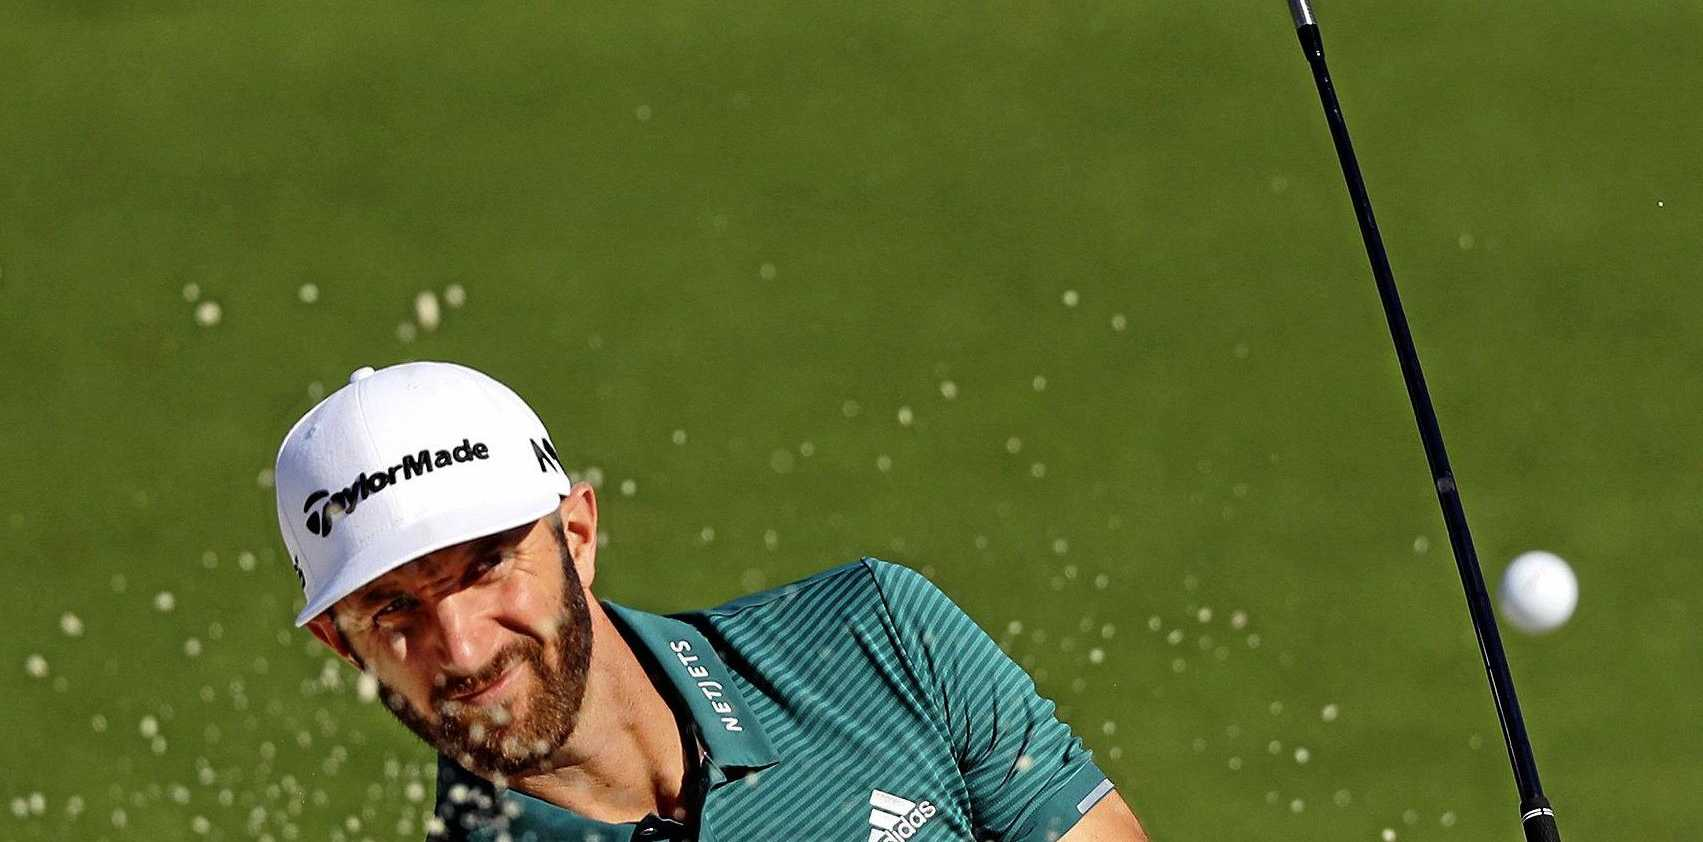 IN FORM: Australian Adam Scott described Dustin Johnson's (pictured) recent run of three wins from as many starts as Tiger Woods-like.